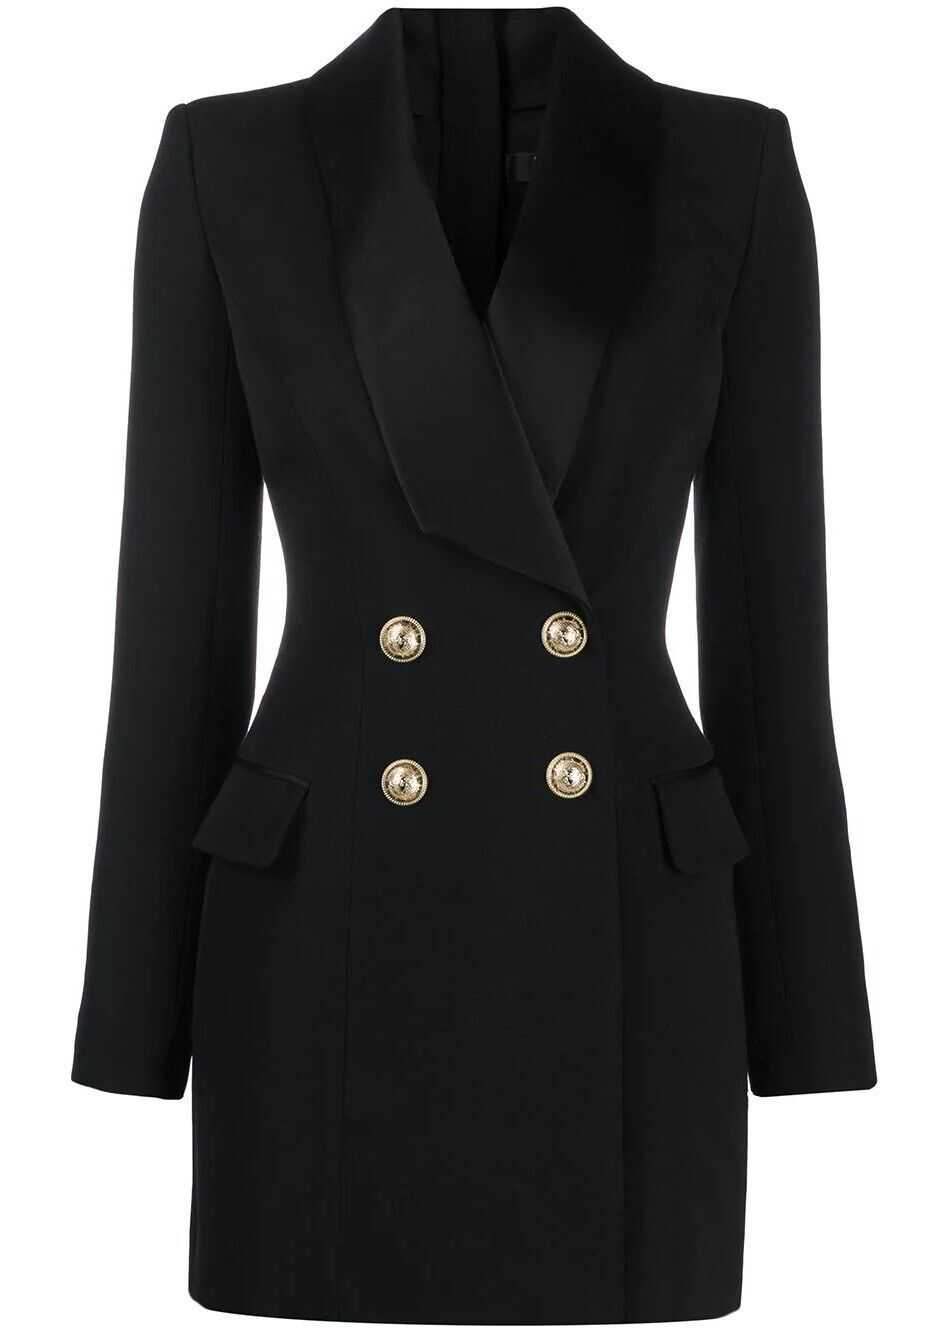 Balmain Wool Dress BLACK